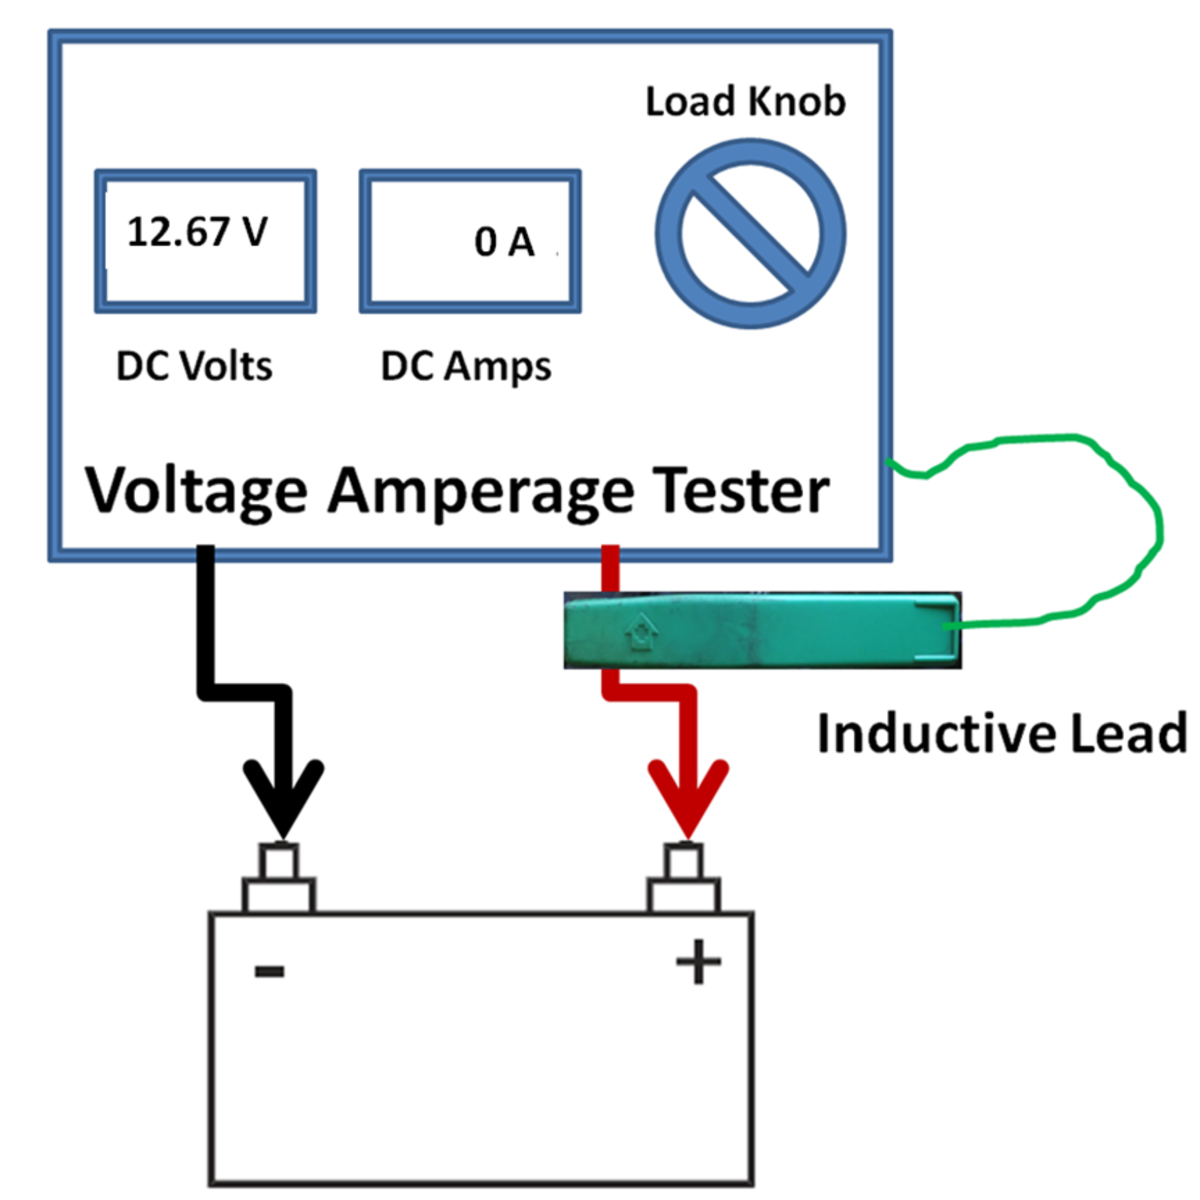 VAT - Voltage Amperage Tester performing a battery load test.